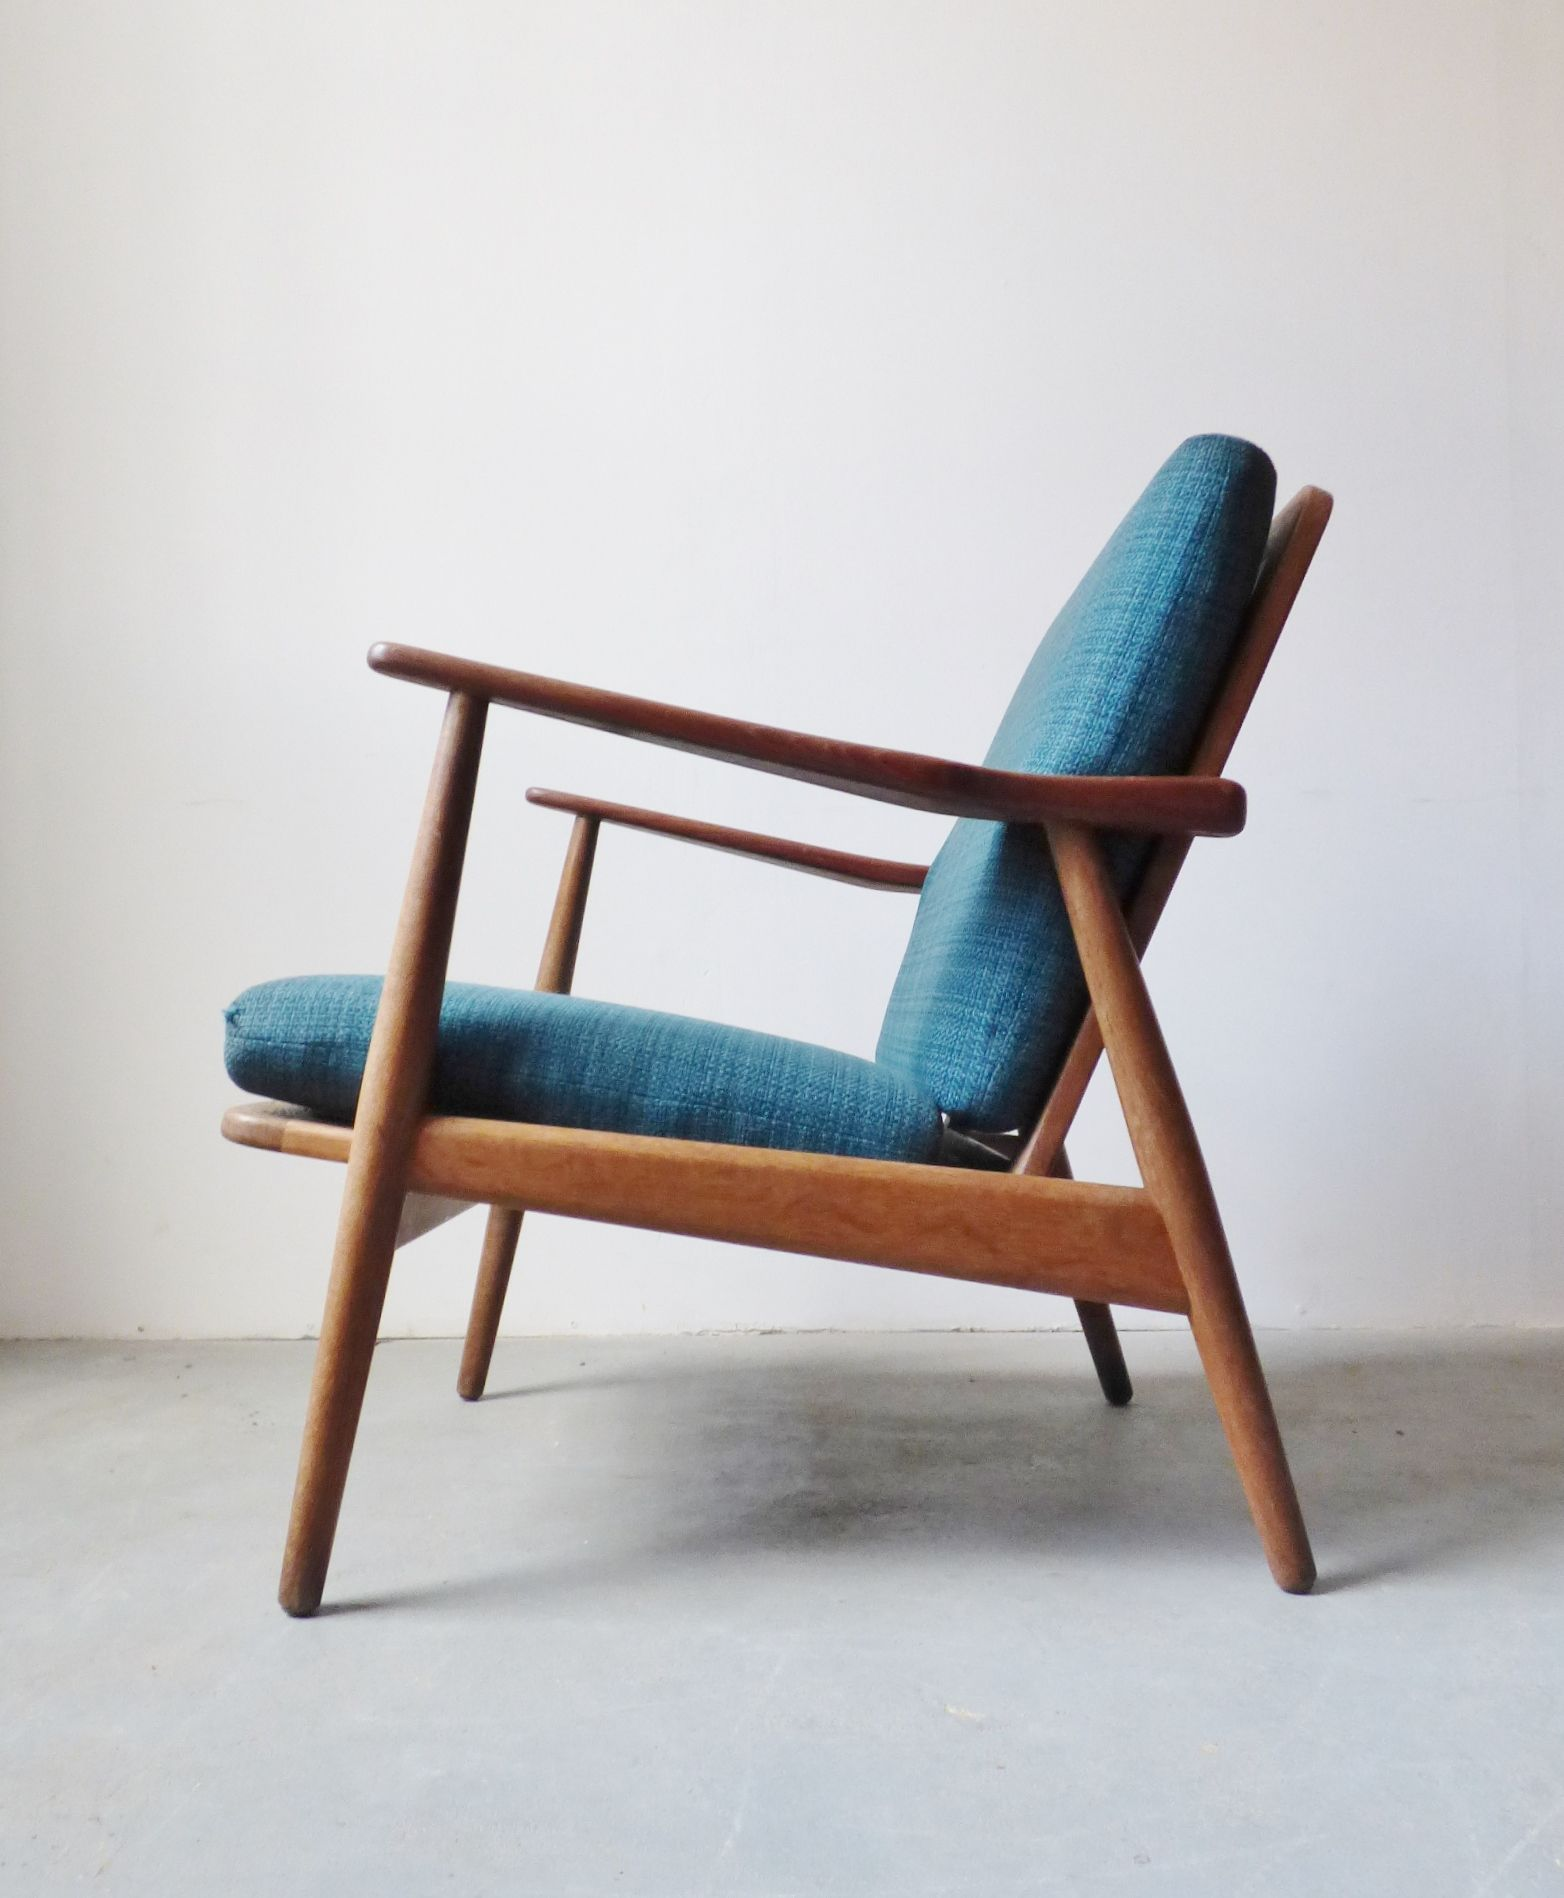 Mid Century Danish Teak Lounge Chair With Blue Cushions Teak Lounge Chair Toddler Desk And Chair Mid Century Danish Furniture